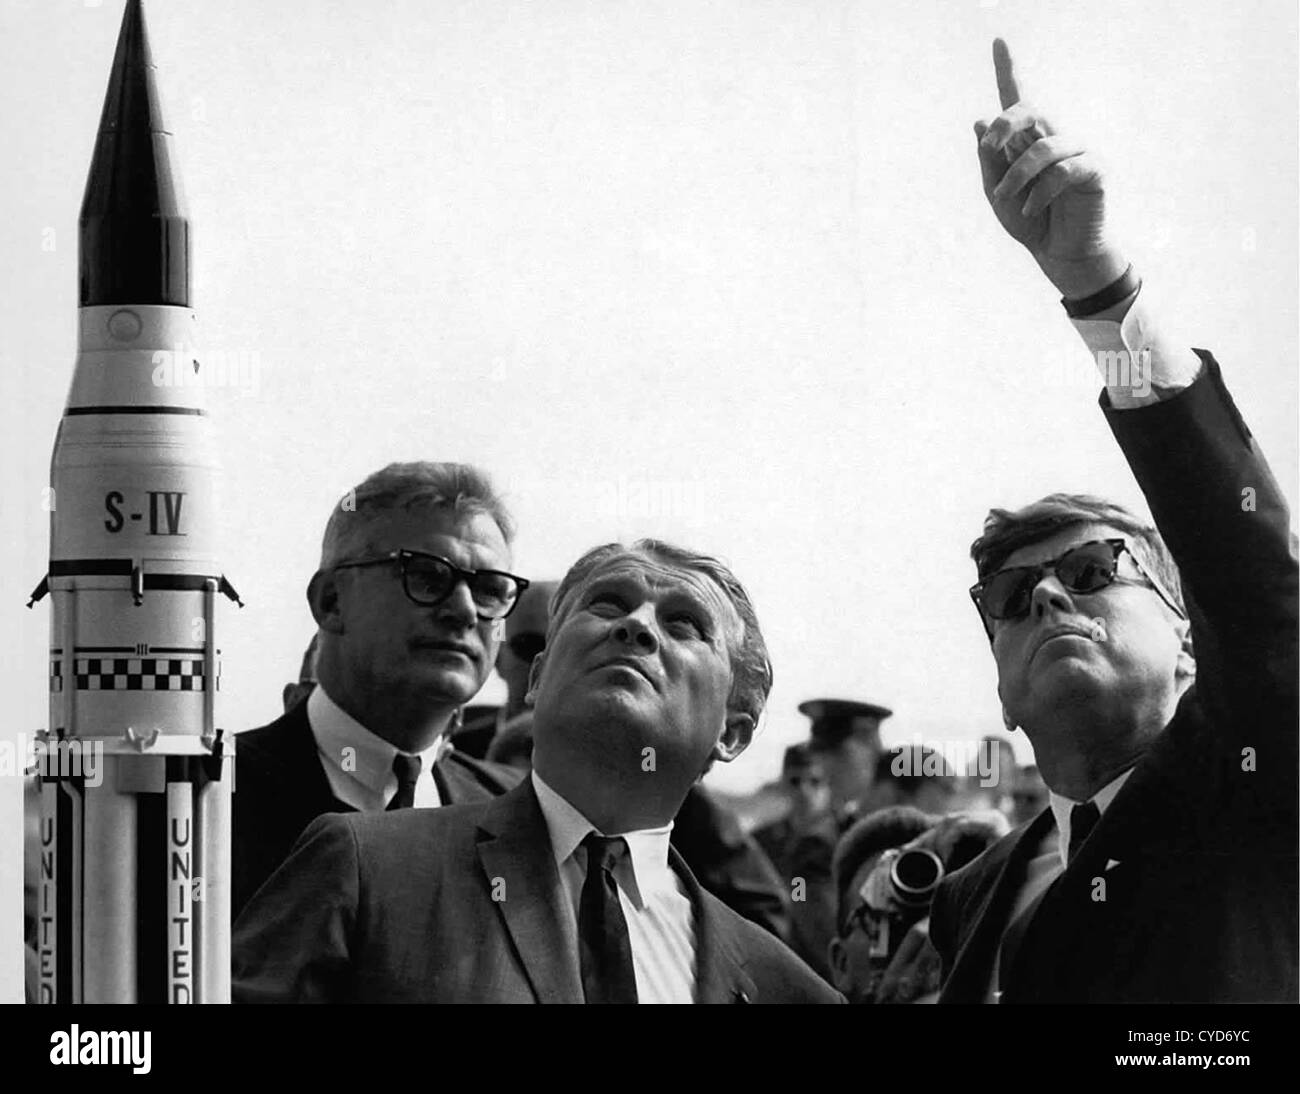 President John F. Kennedy, right, gets an explanation of the Saturn V launch system from Dr. Wernher von Braun at Stock Photo